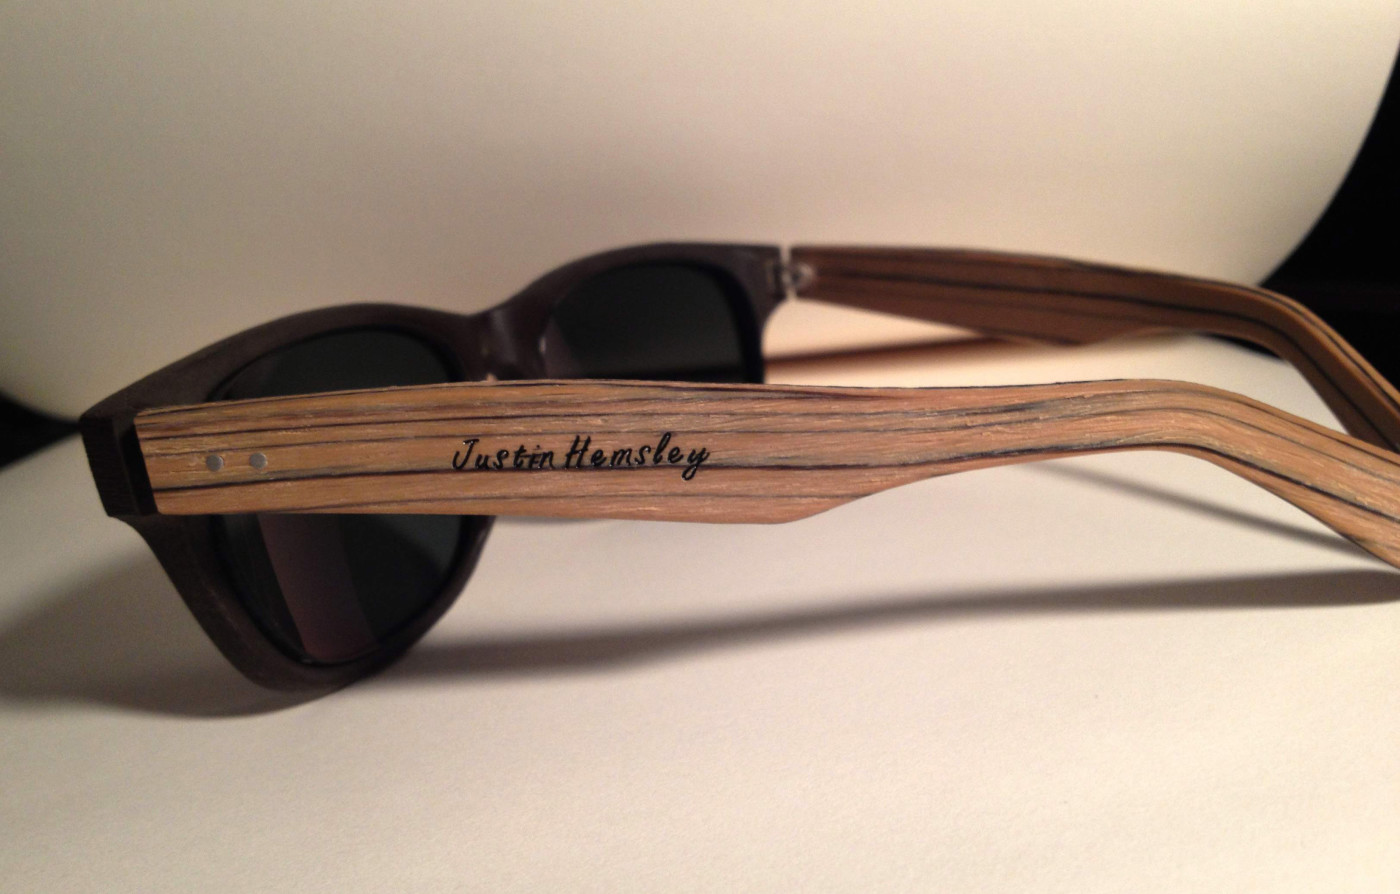 c3b31a8adc1 Custom Zenni Sunglasses - Justin Hemsley